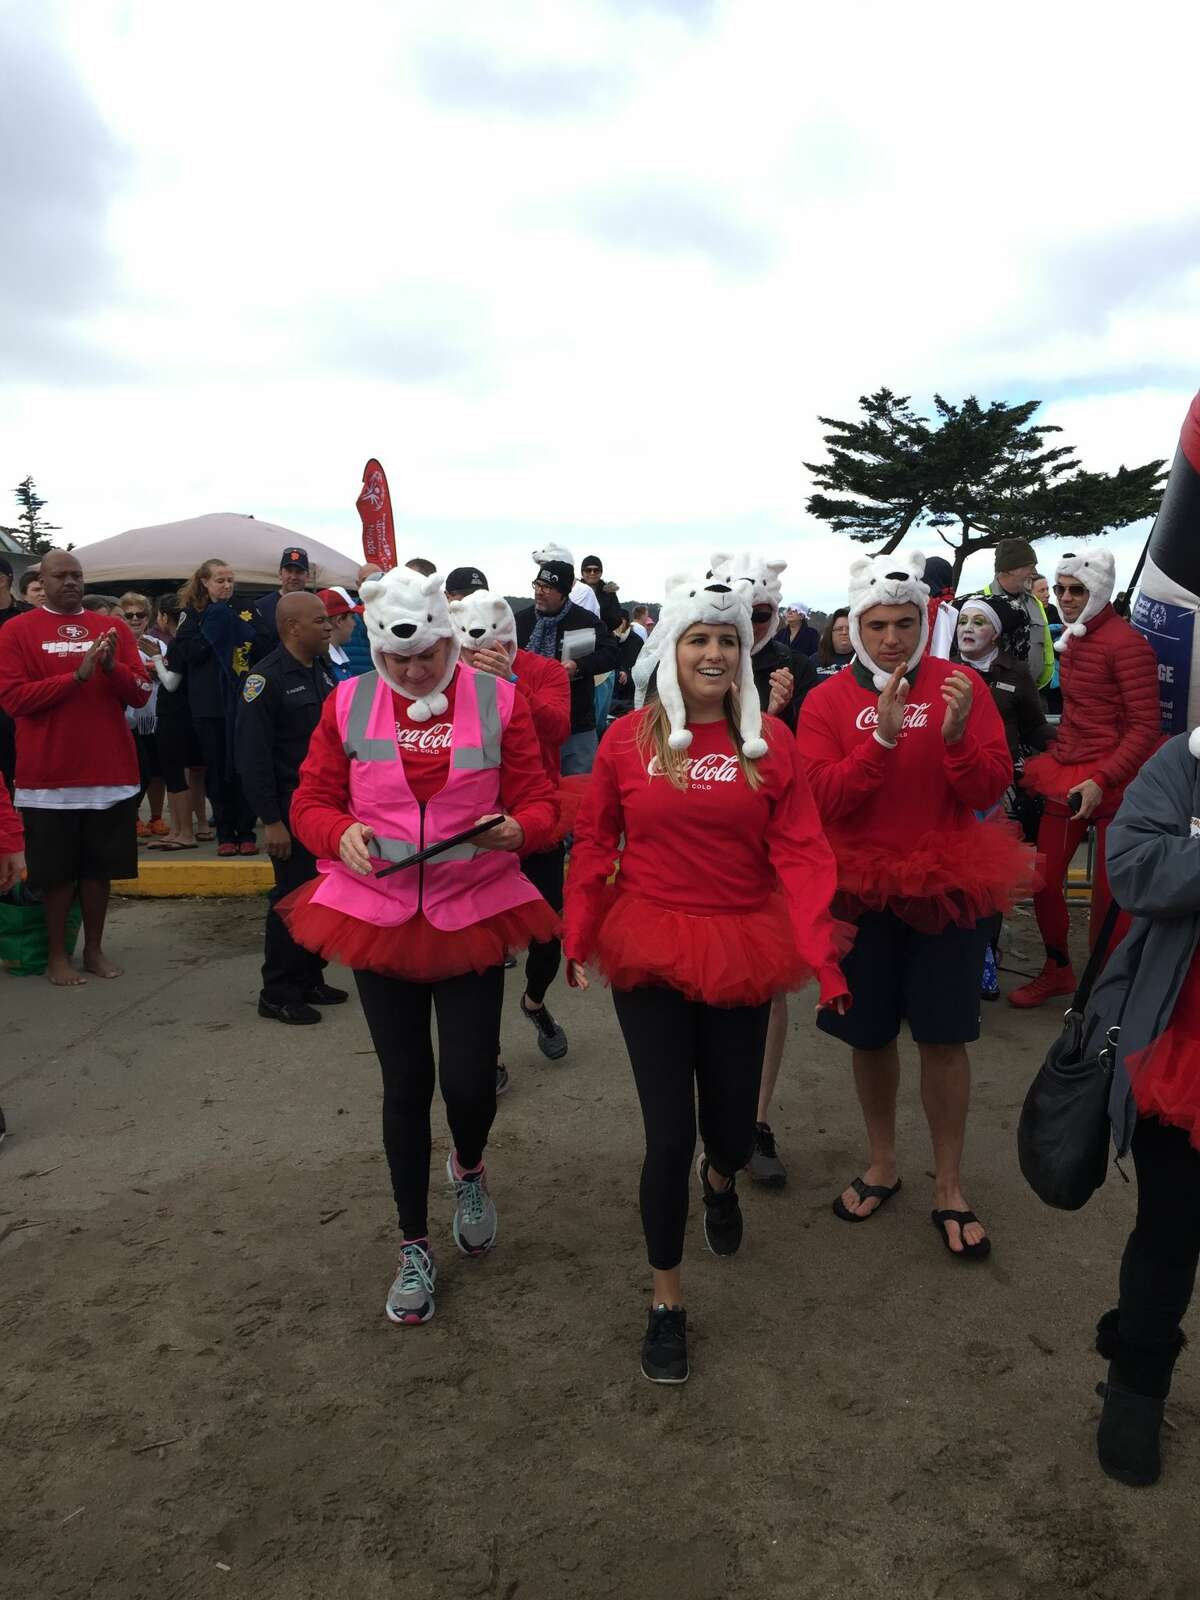 The annual Polar Plunge took place at the Little Marina Green in San Francisco on Feb. 18. The 3k/5k run benefits the Northern California Special Olympics and ends with a chilly dip in the Bay. Costumes are recommended.